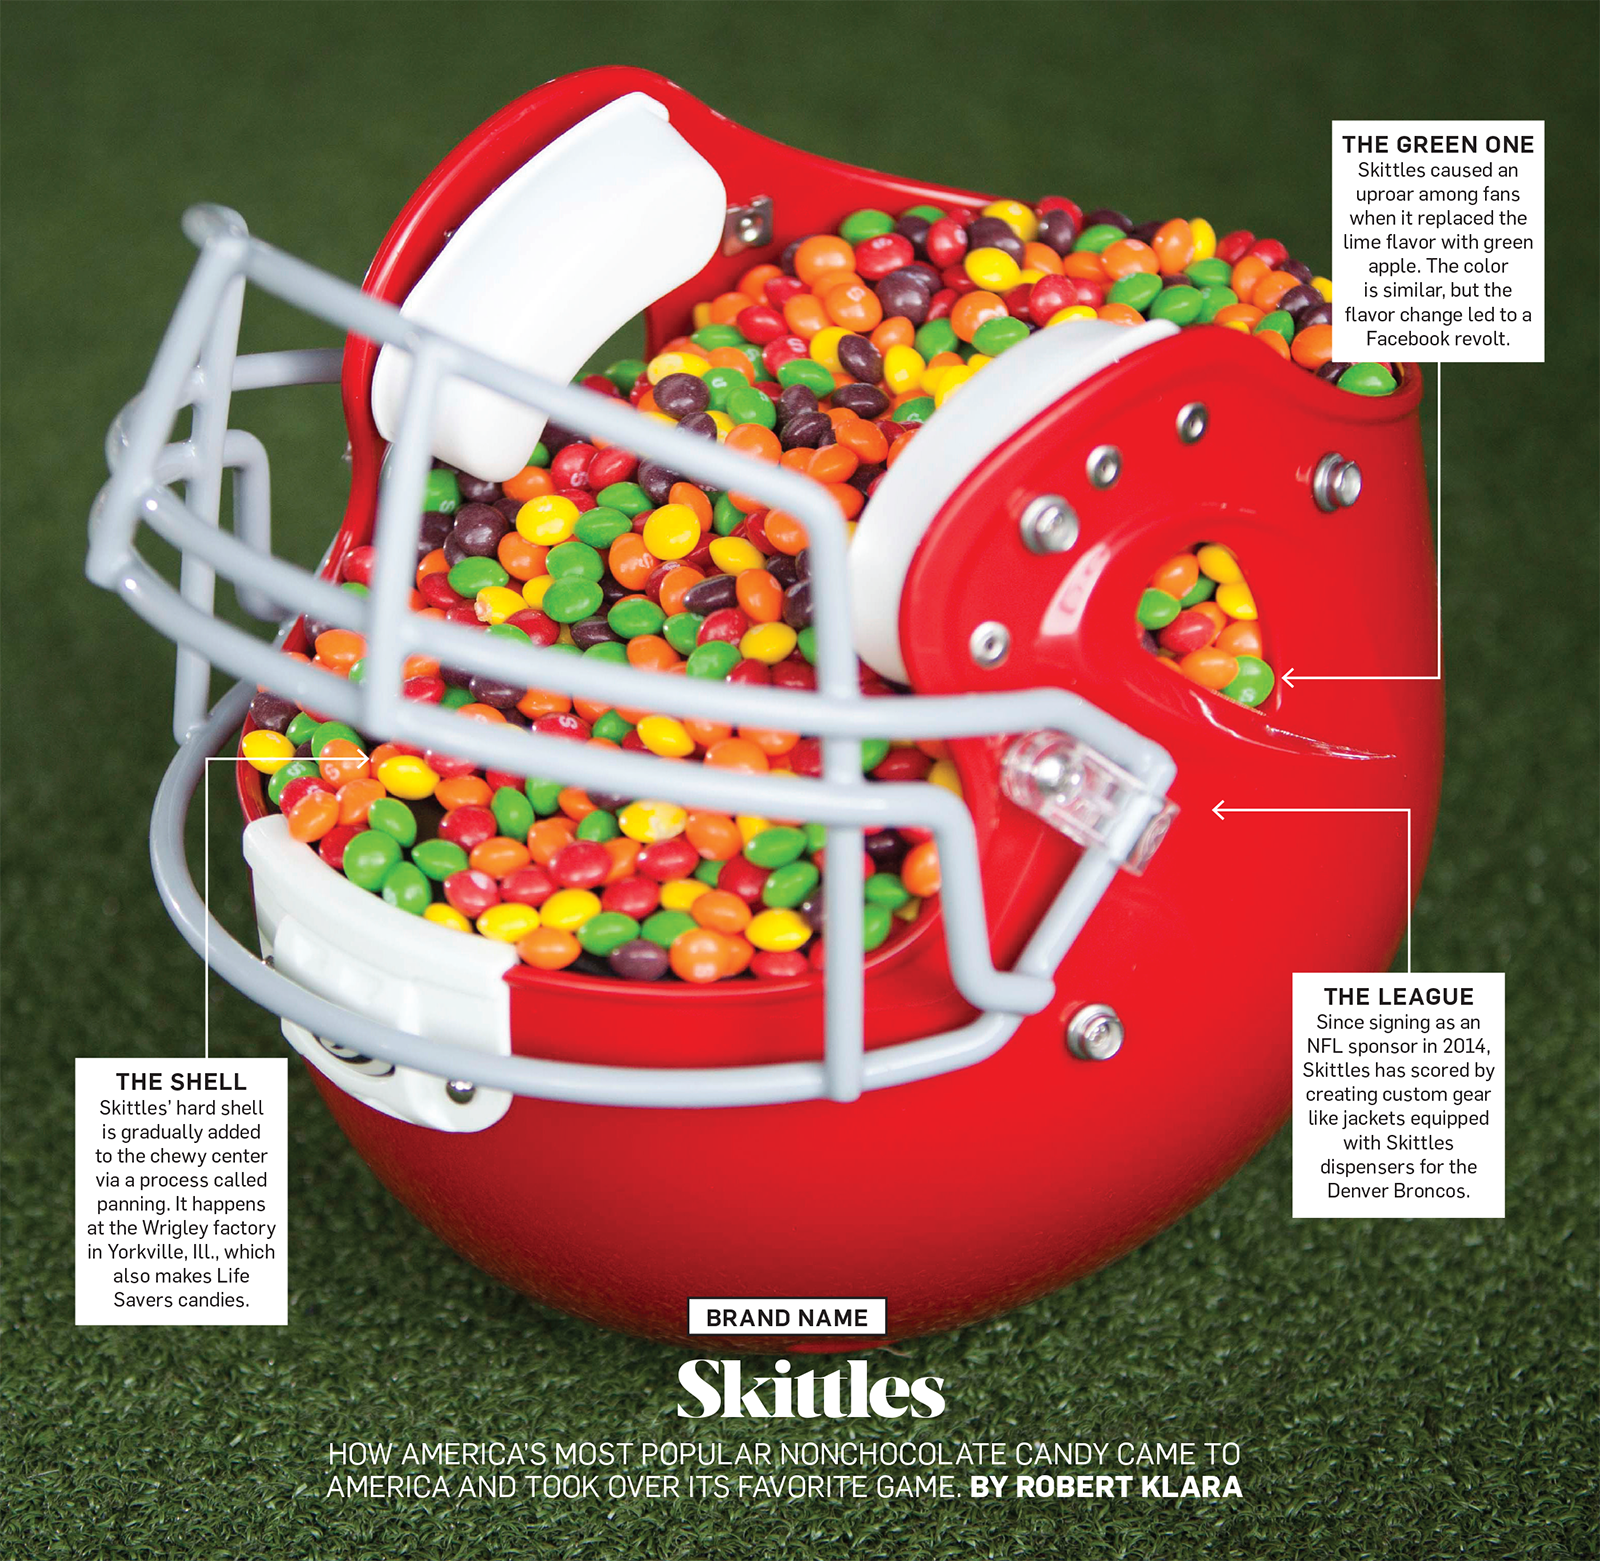 How Skittles Became America's (and the NFL's) Favorite Non